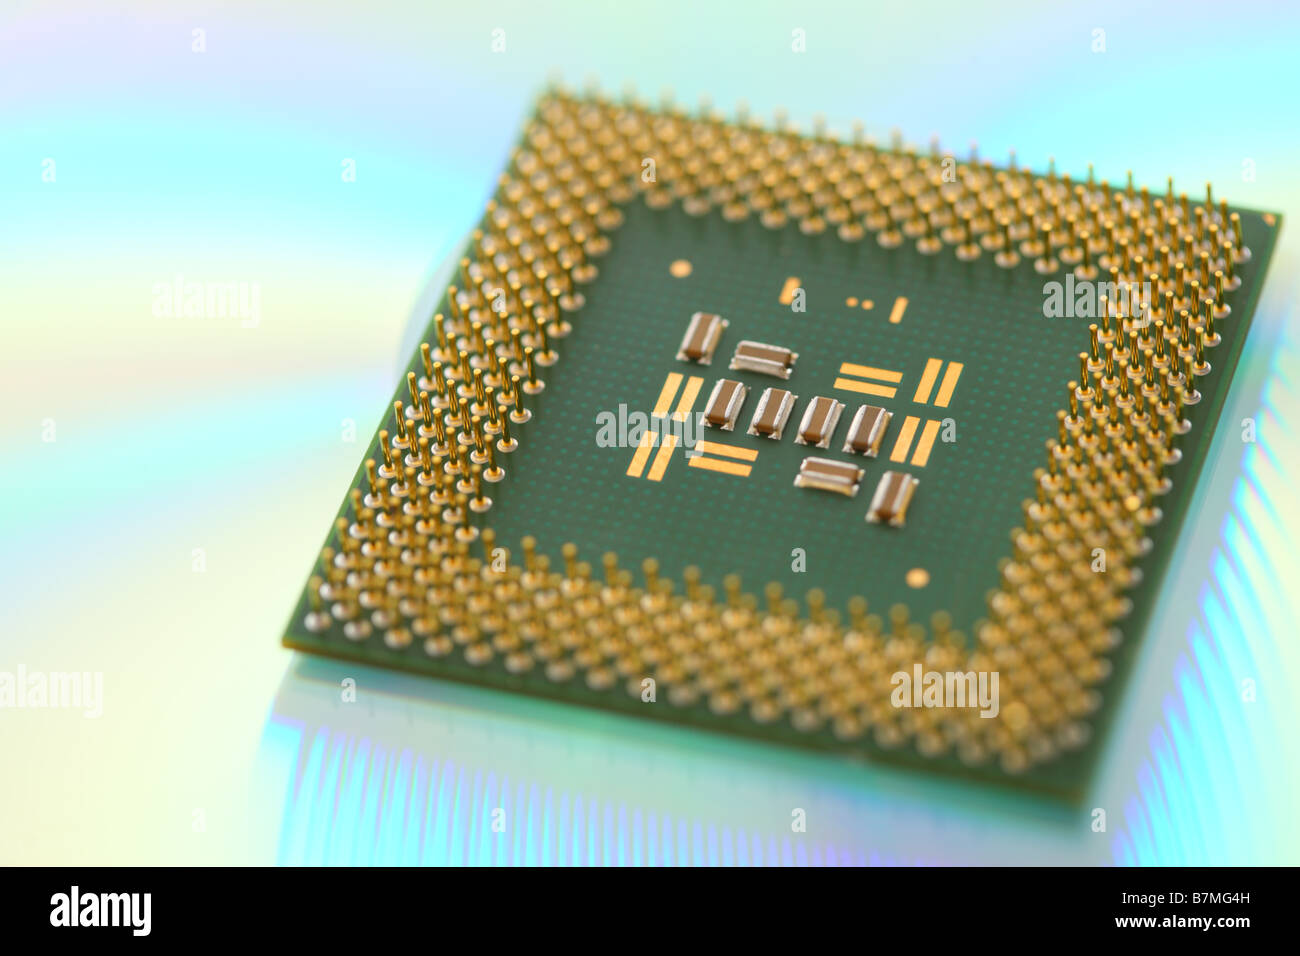 Computer CPU processor chip on green reflective background - Stock Image